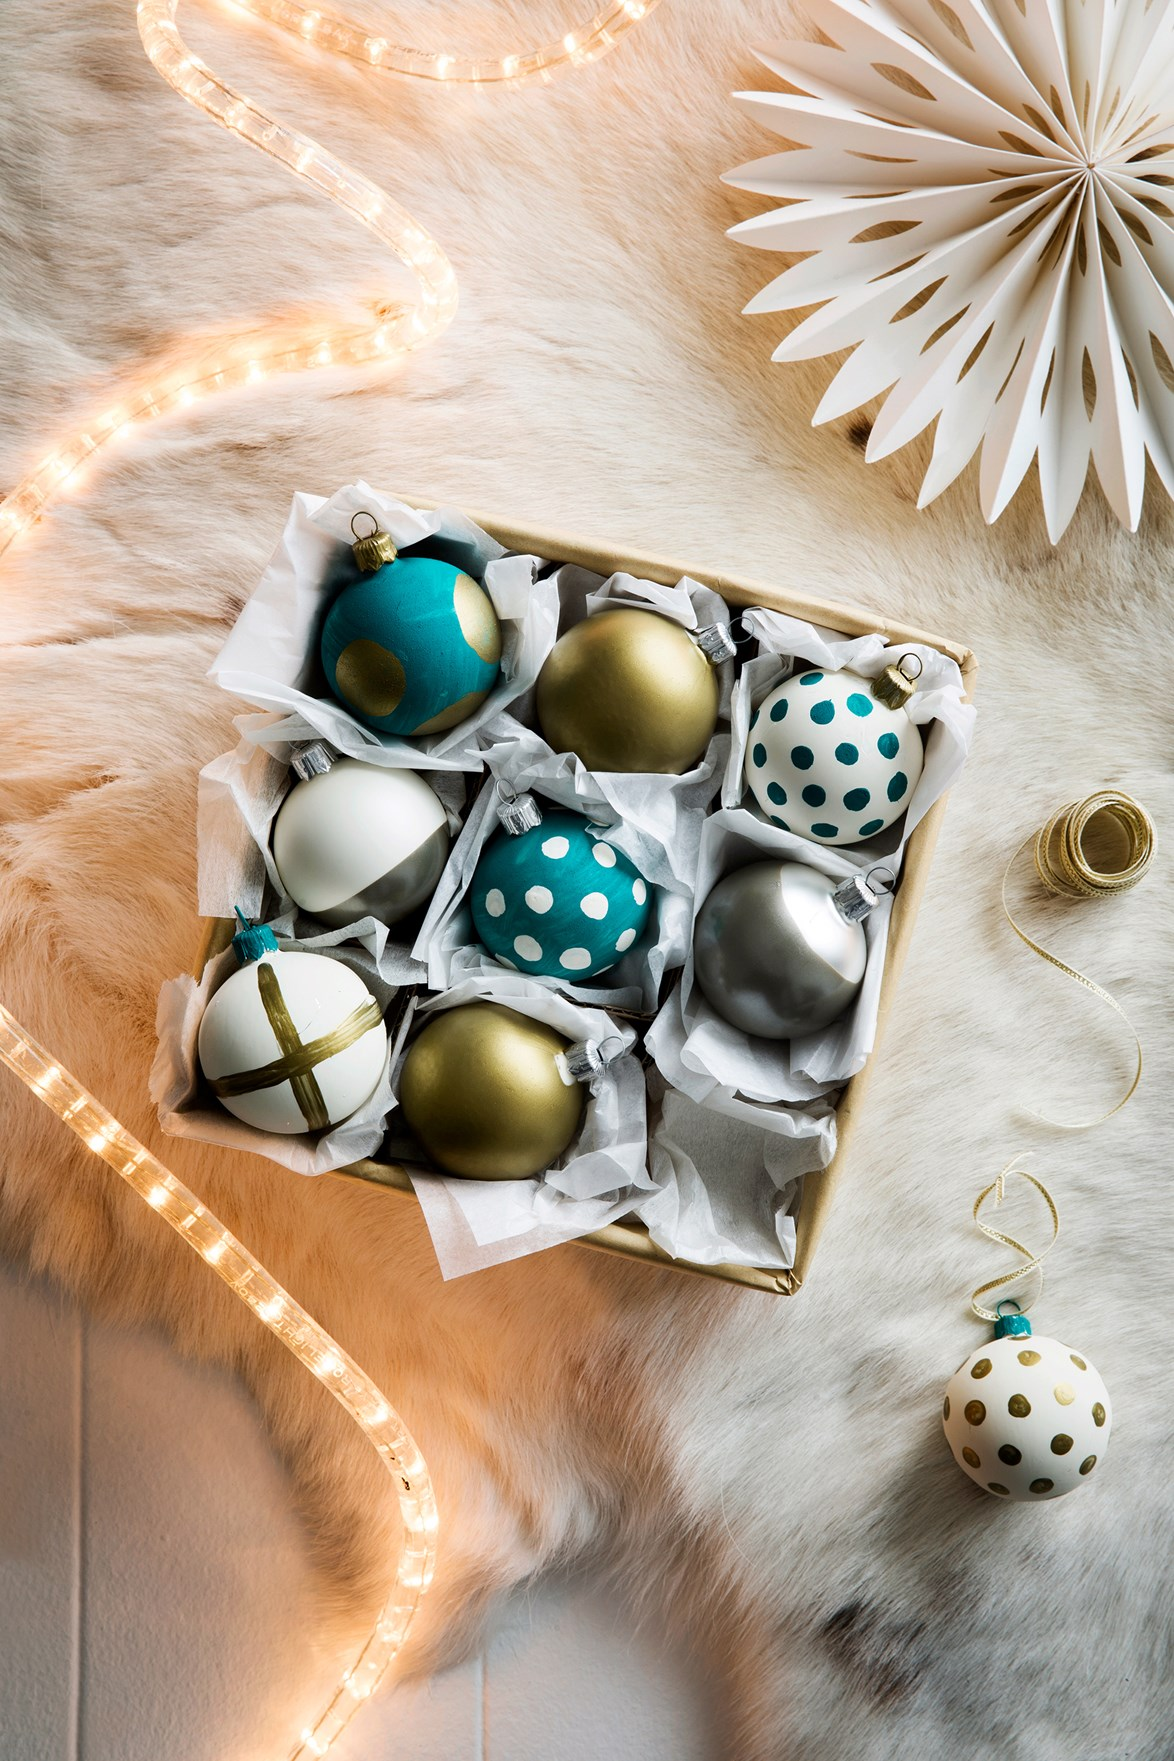 Storing your Christmas decorations carefully will help to preserve them for years to come. Photo: Chris Warnes